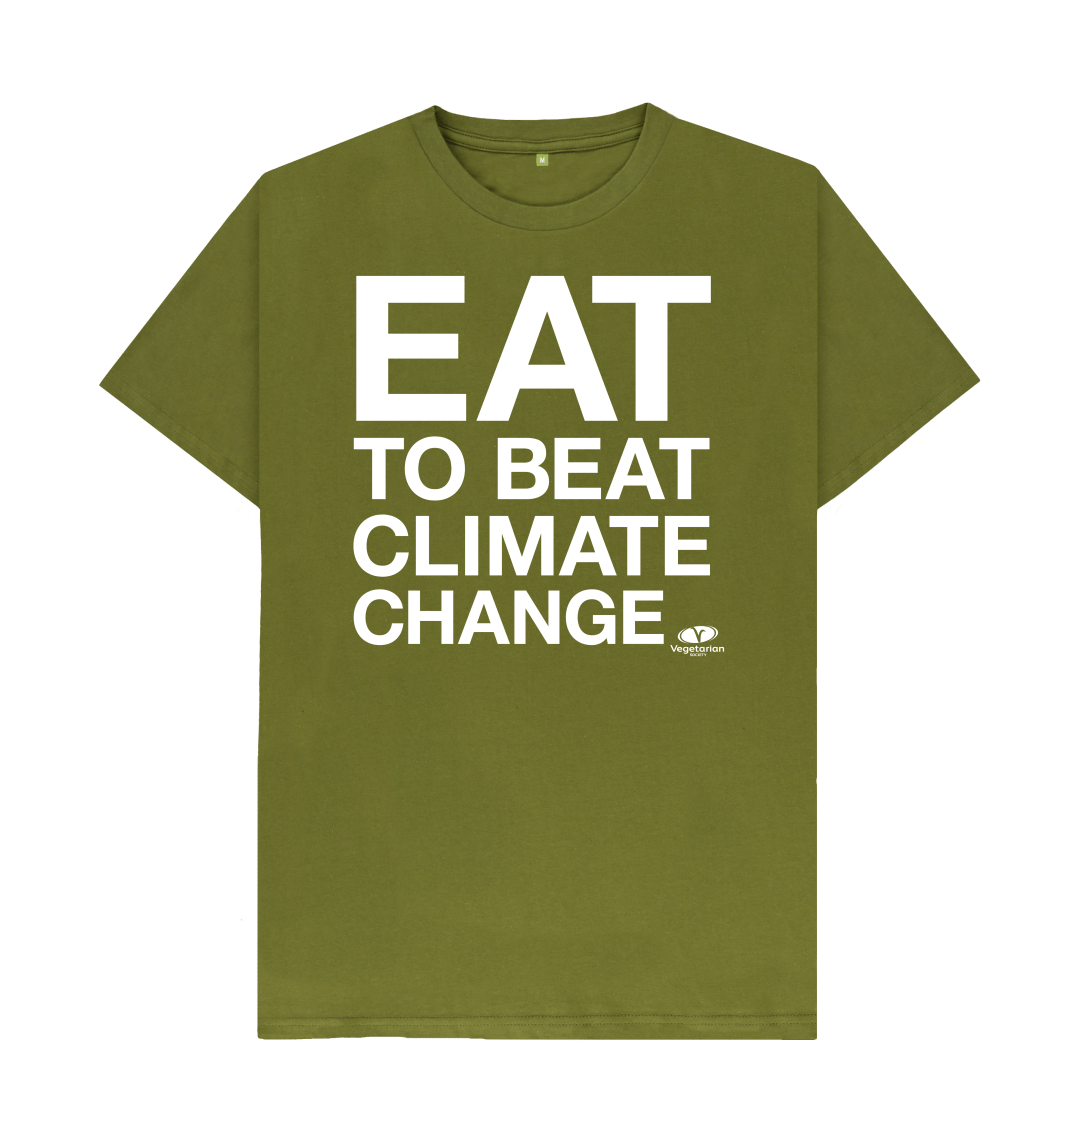 Exciting news! There's free postage all weekend on our #EatToBeatClimateChange t-shirts. Buy yours here: